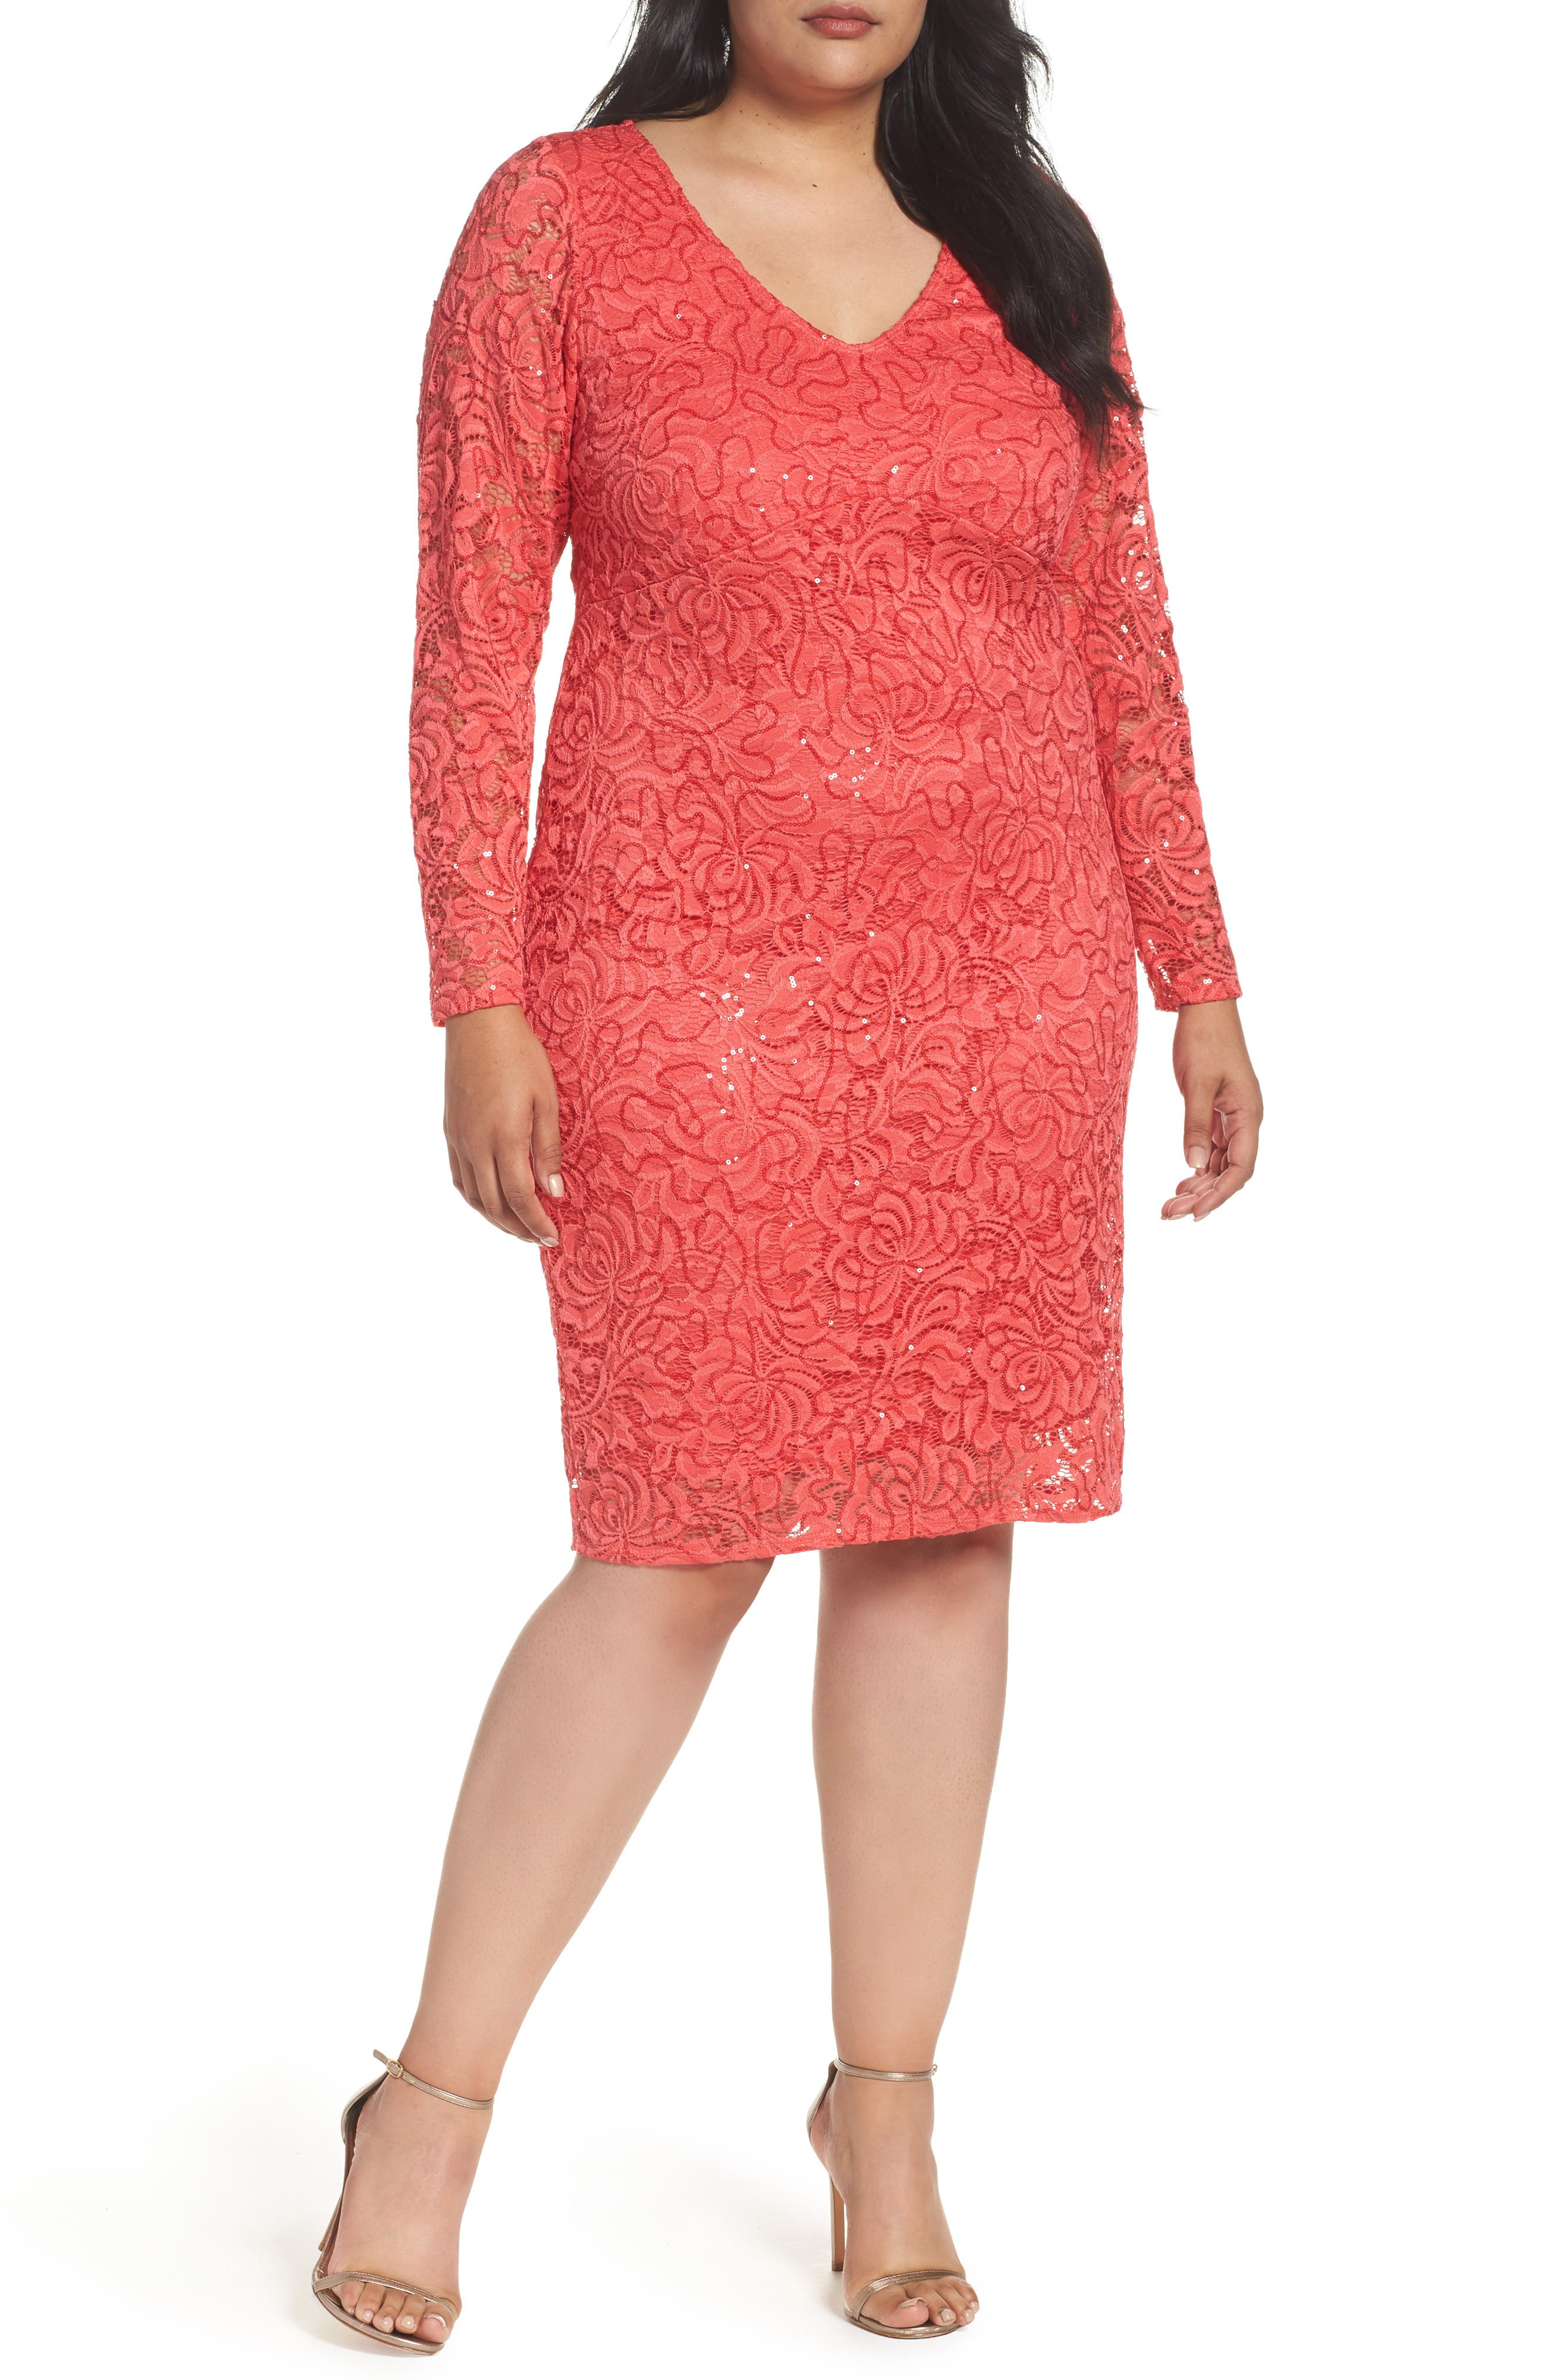 Marina Lace Sheath Dress (Plus Size)